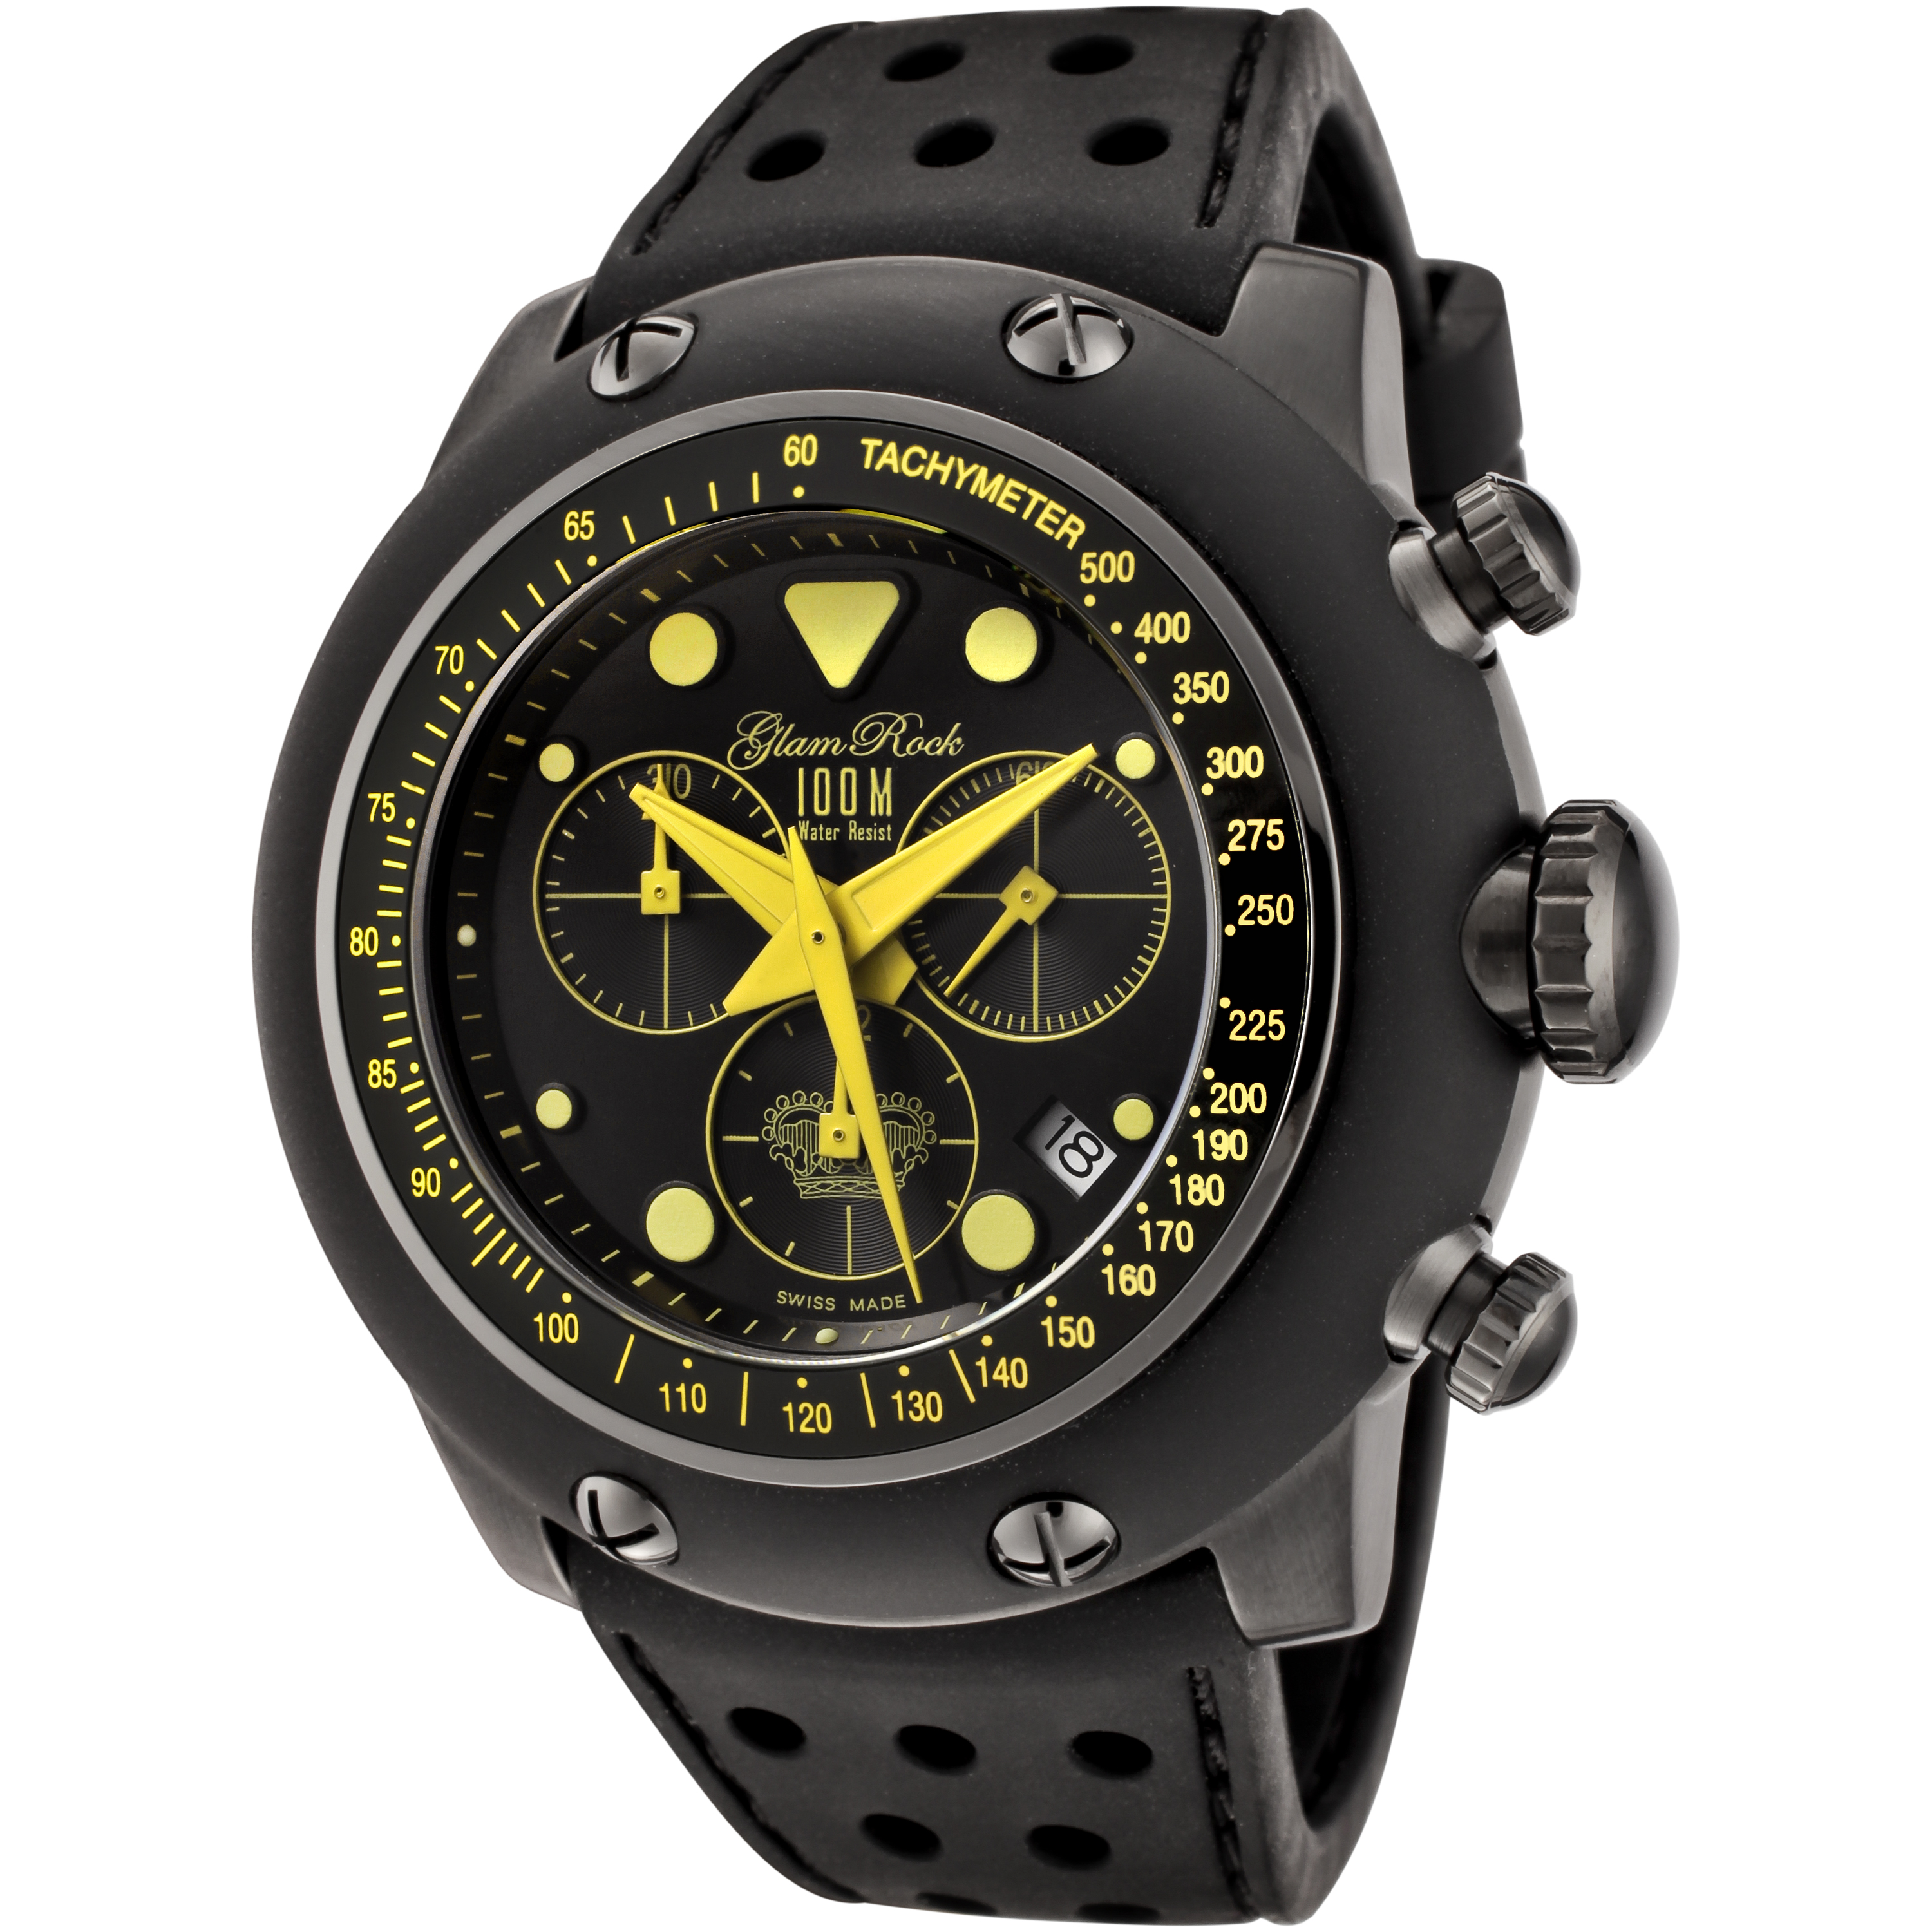 Glam Rock Race Track Chronograph Black Silicone and Dial Yellow Accents Black Ion Plated Stainless Steel PartNumber: 04480189000P KsnValue: 2184192 MfgPartNumber: LAMROCK-GR90112